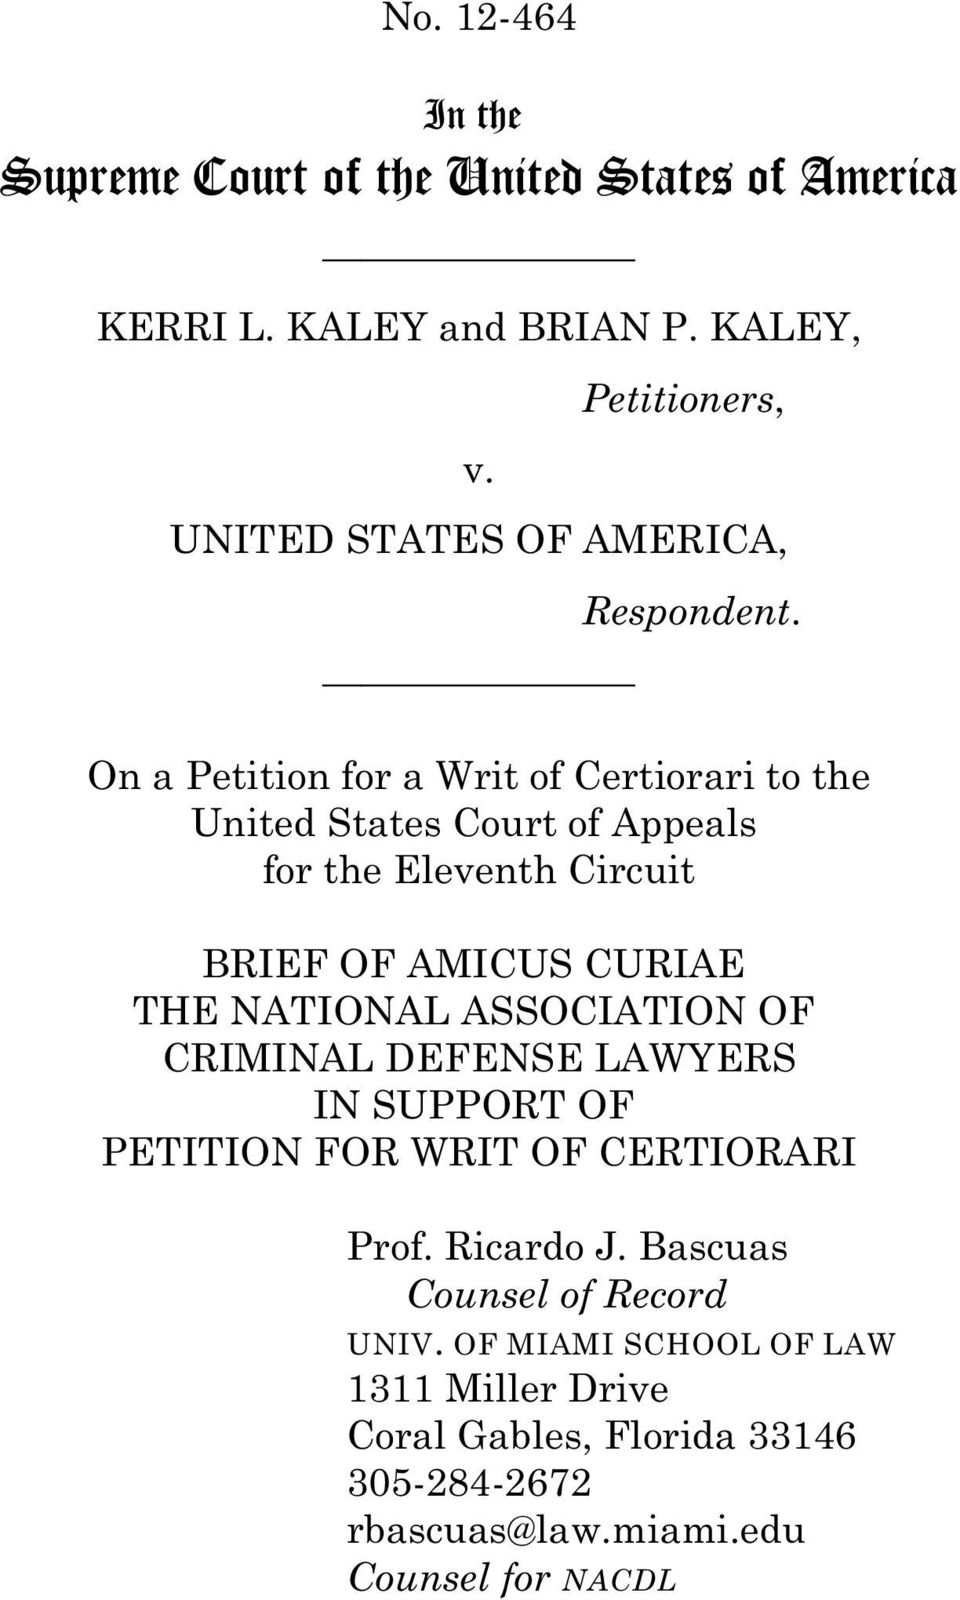 On a Petition for a Writ of Certiorari to the United States Court of Appeals for the Eleventh Circuit BRIEF OF AMICUS CURIAE THE